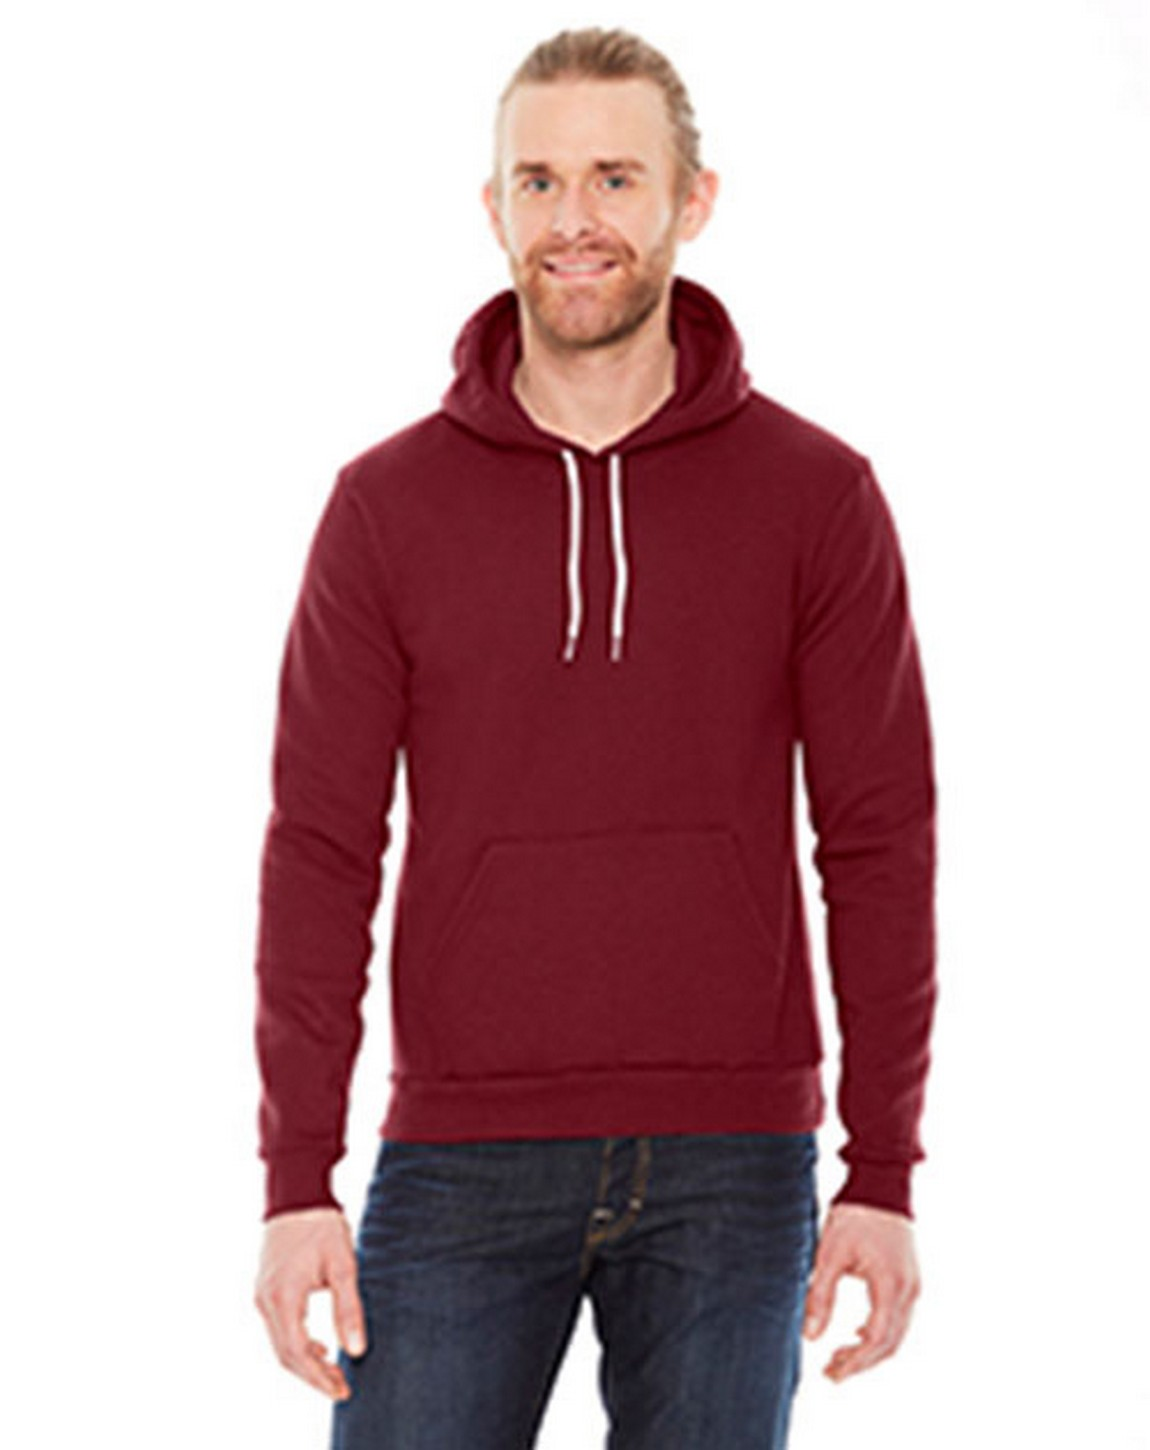 American Apparel F498W Unisex Flex Fleece Drop Shoulder Pullover Hoodie